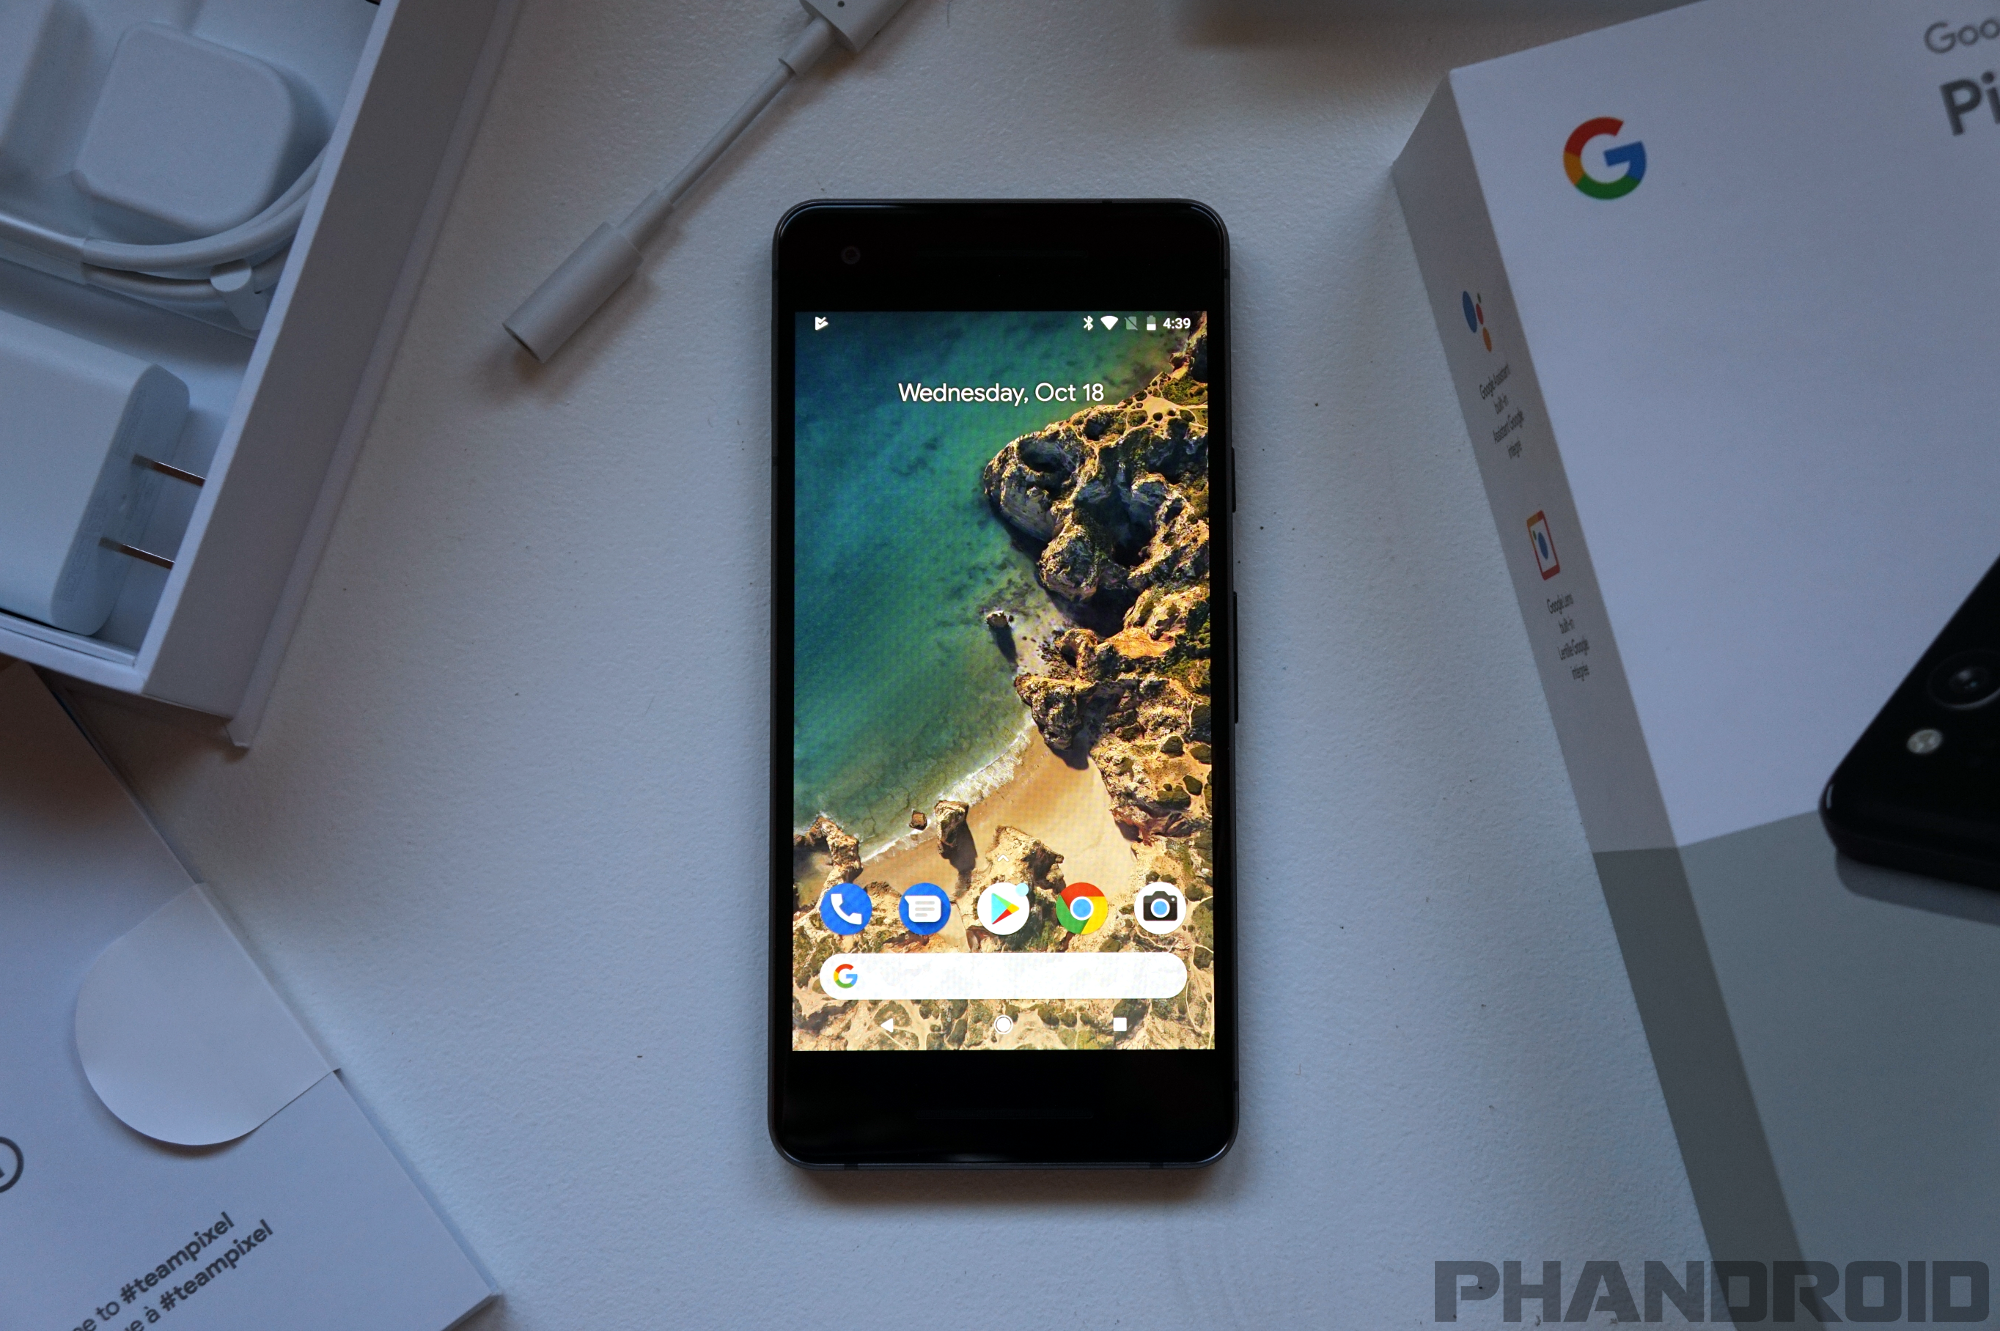 12 First things every Pixel 2 owner should do